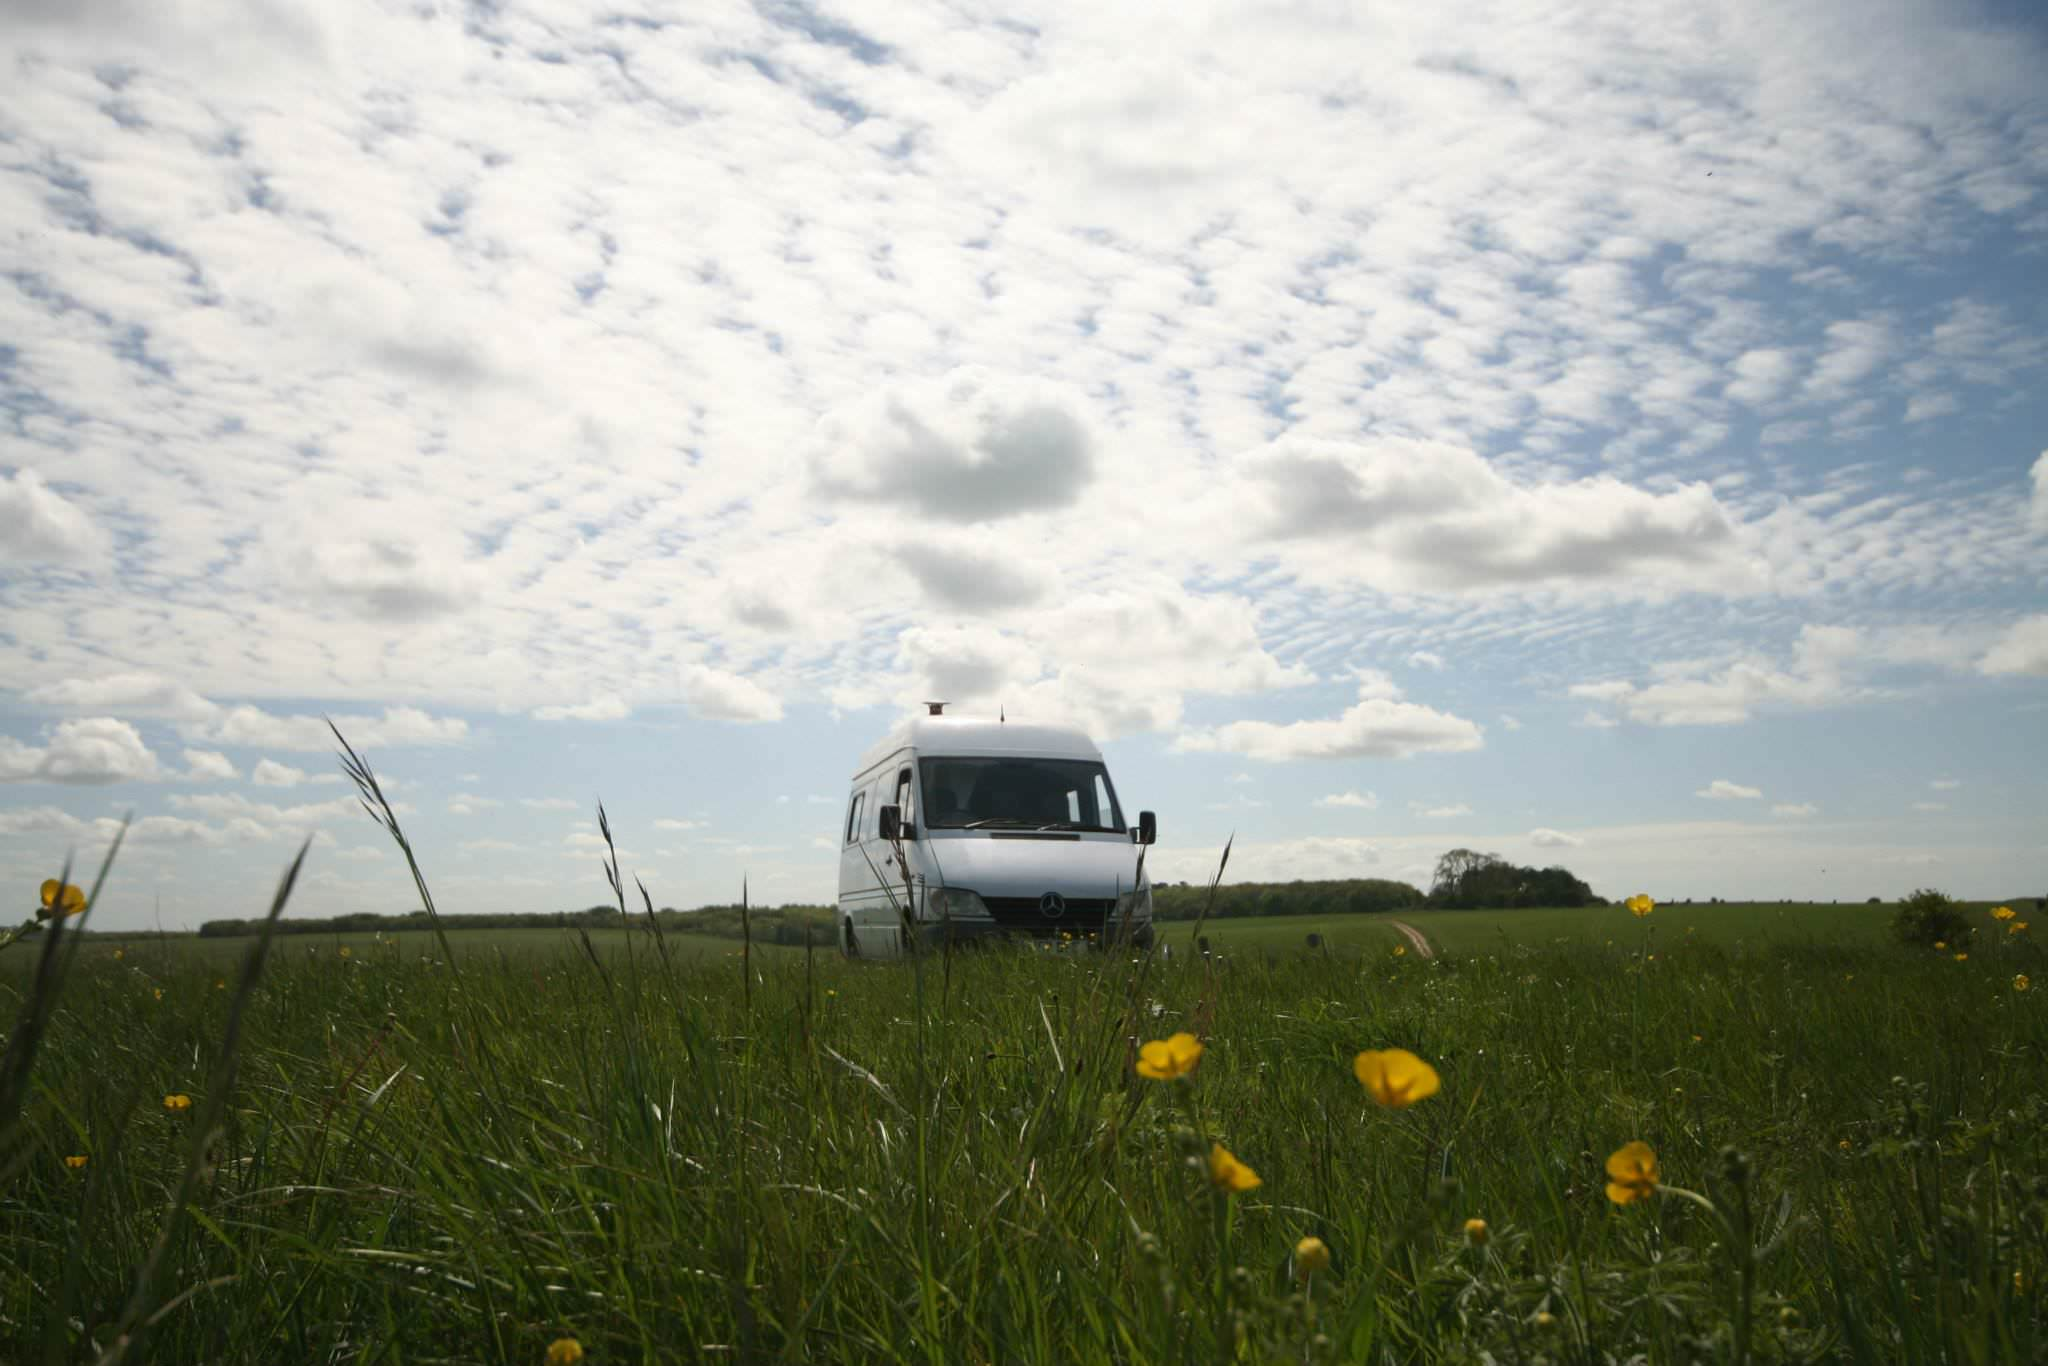 ashleigh the campervan in a field